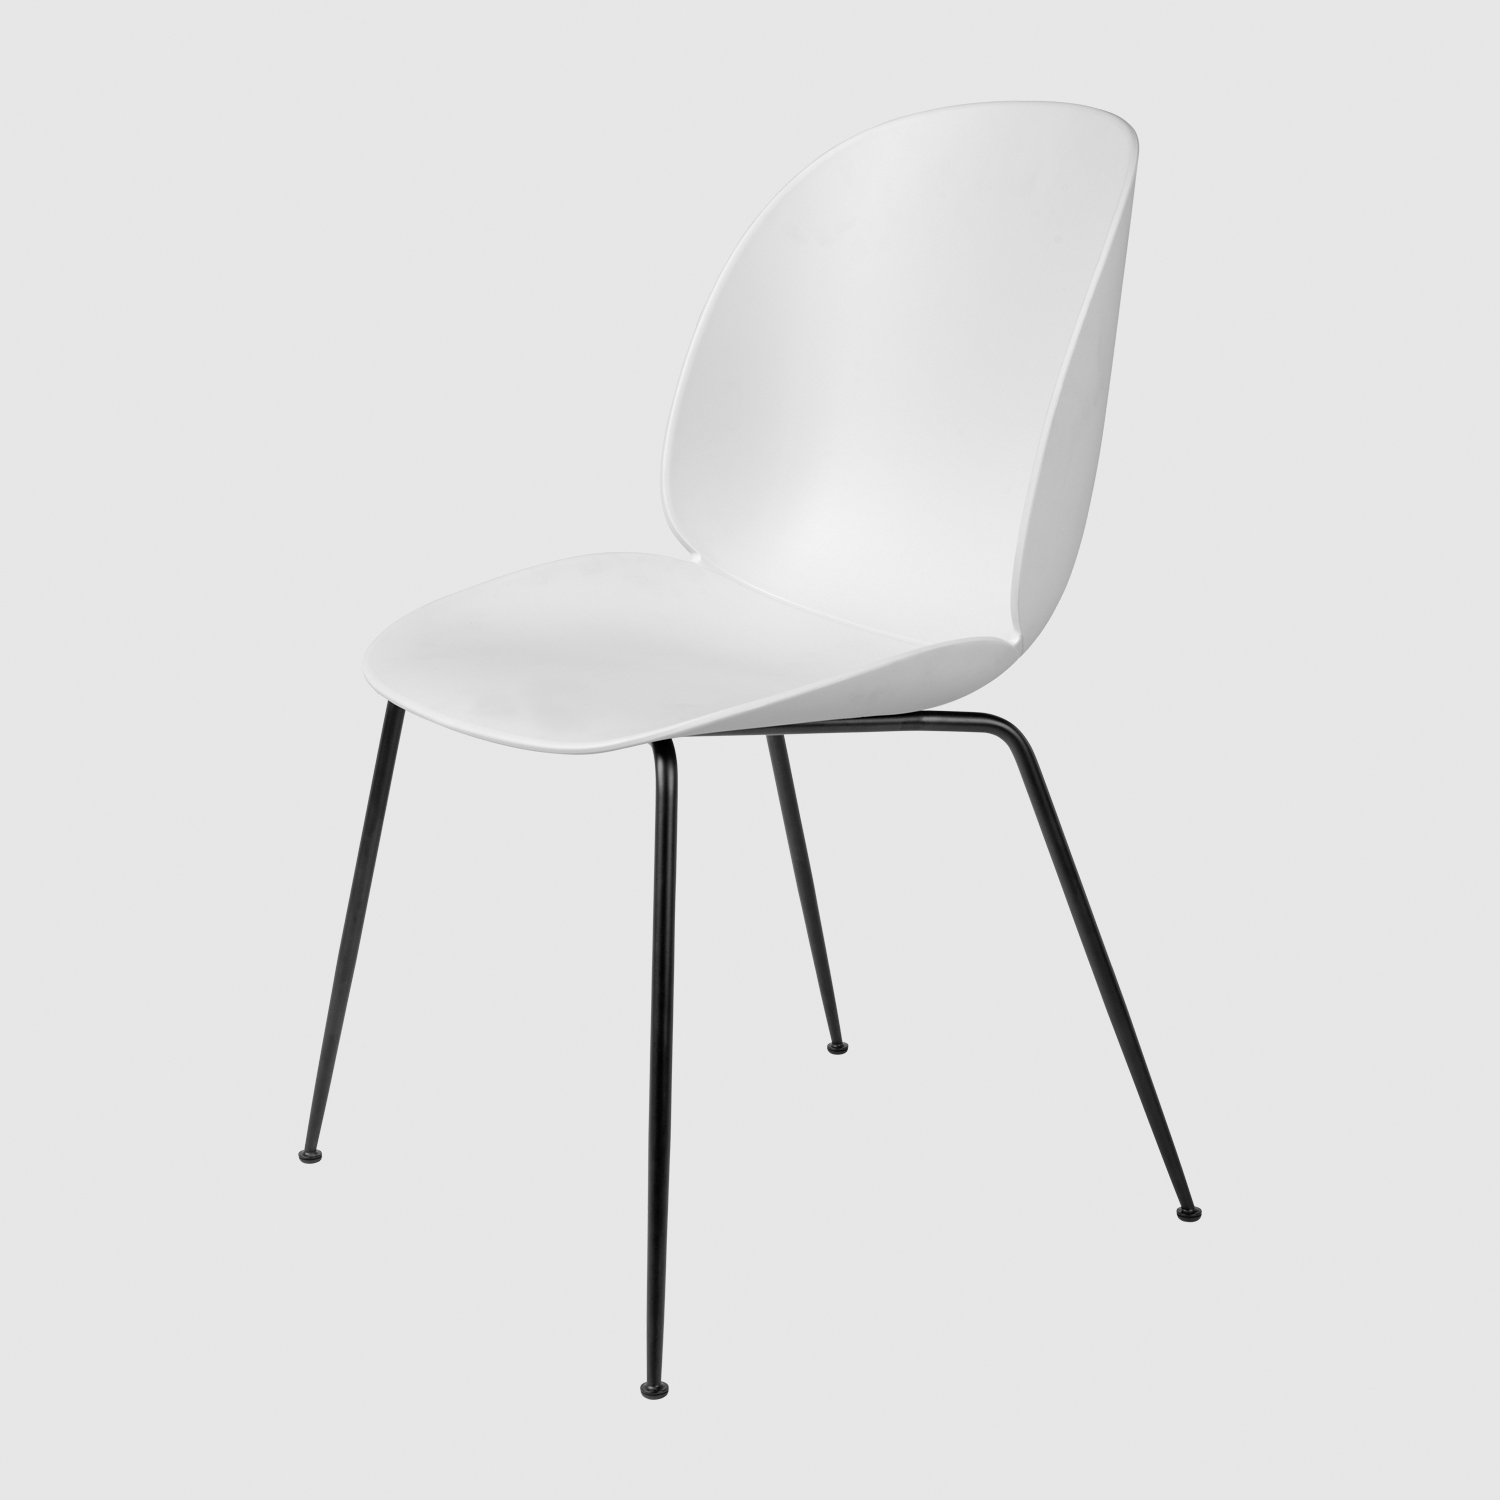 Beetle_DiningChair_Conic_Unupholstered_Black_White_Front.jpg